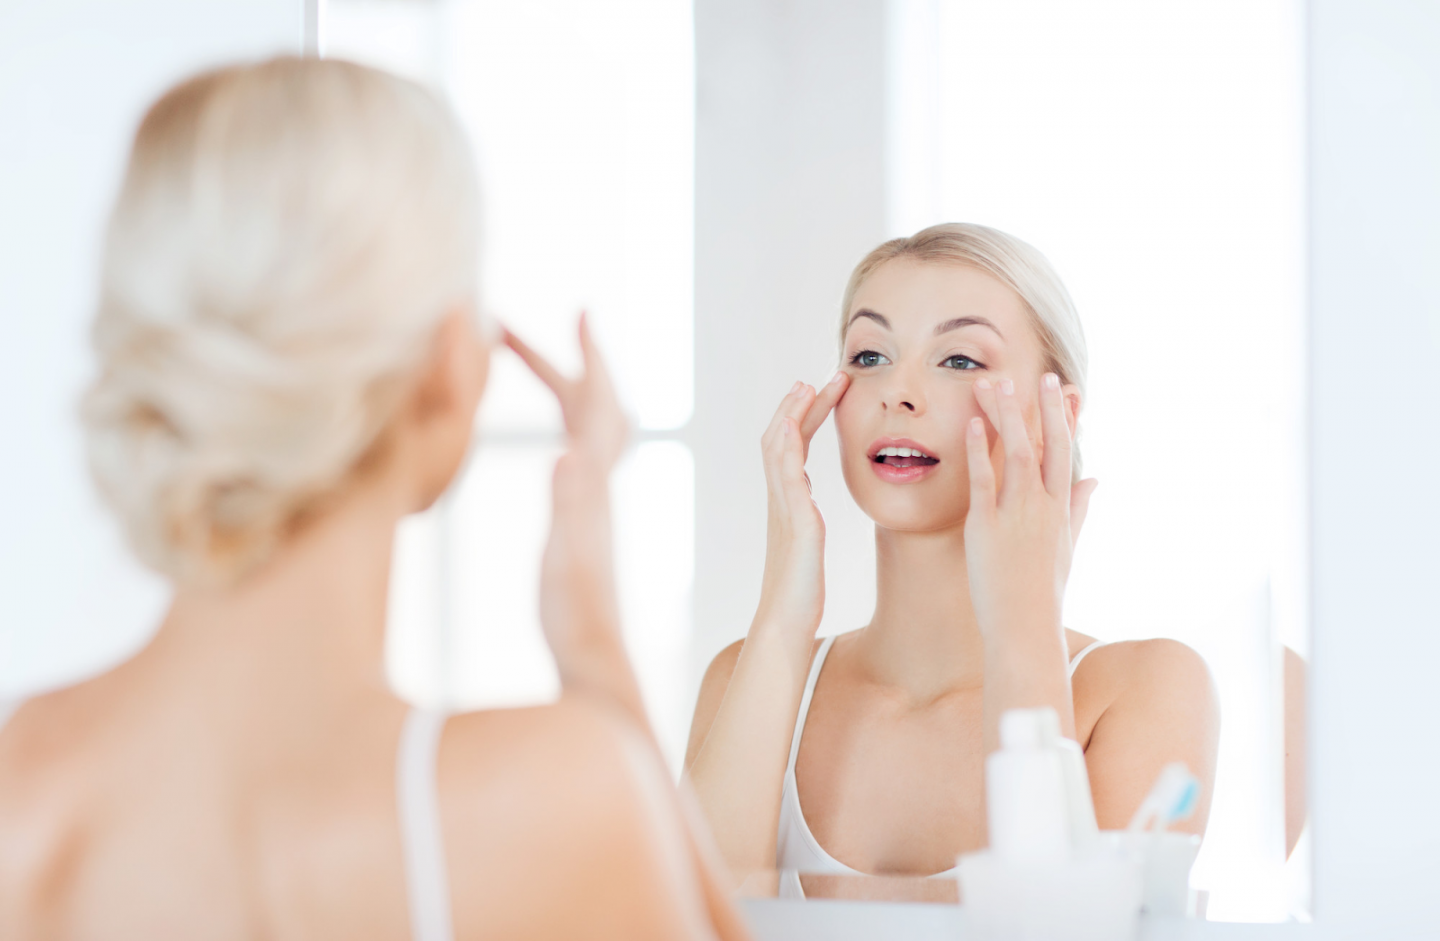 4 MAKEUP TIPS THAT WILL BLOW YOUR MIND